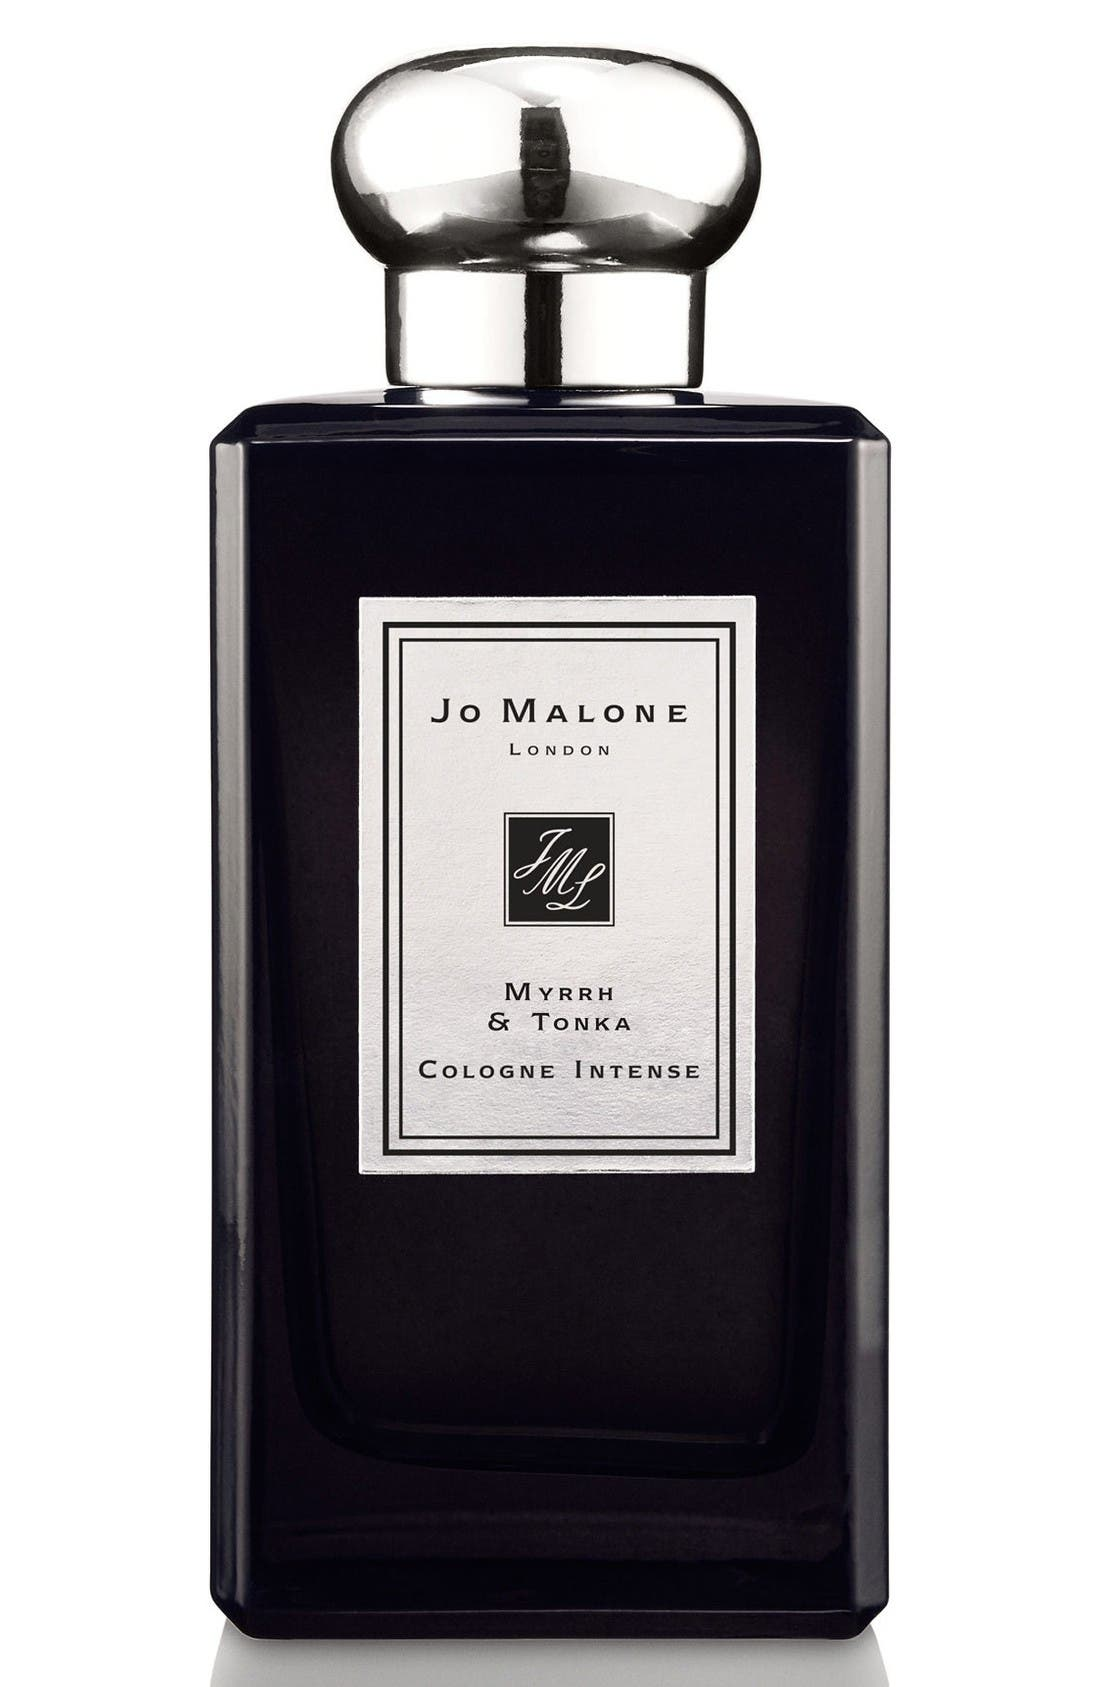 Jo Malone London™ Myrrh & Tonka Cologne Intense